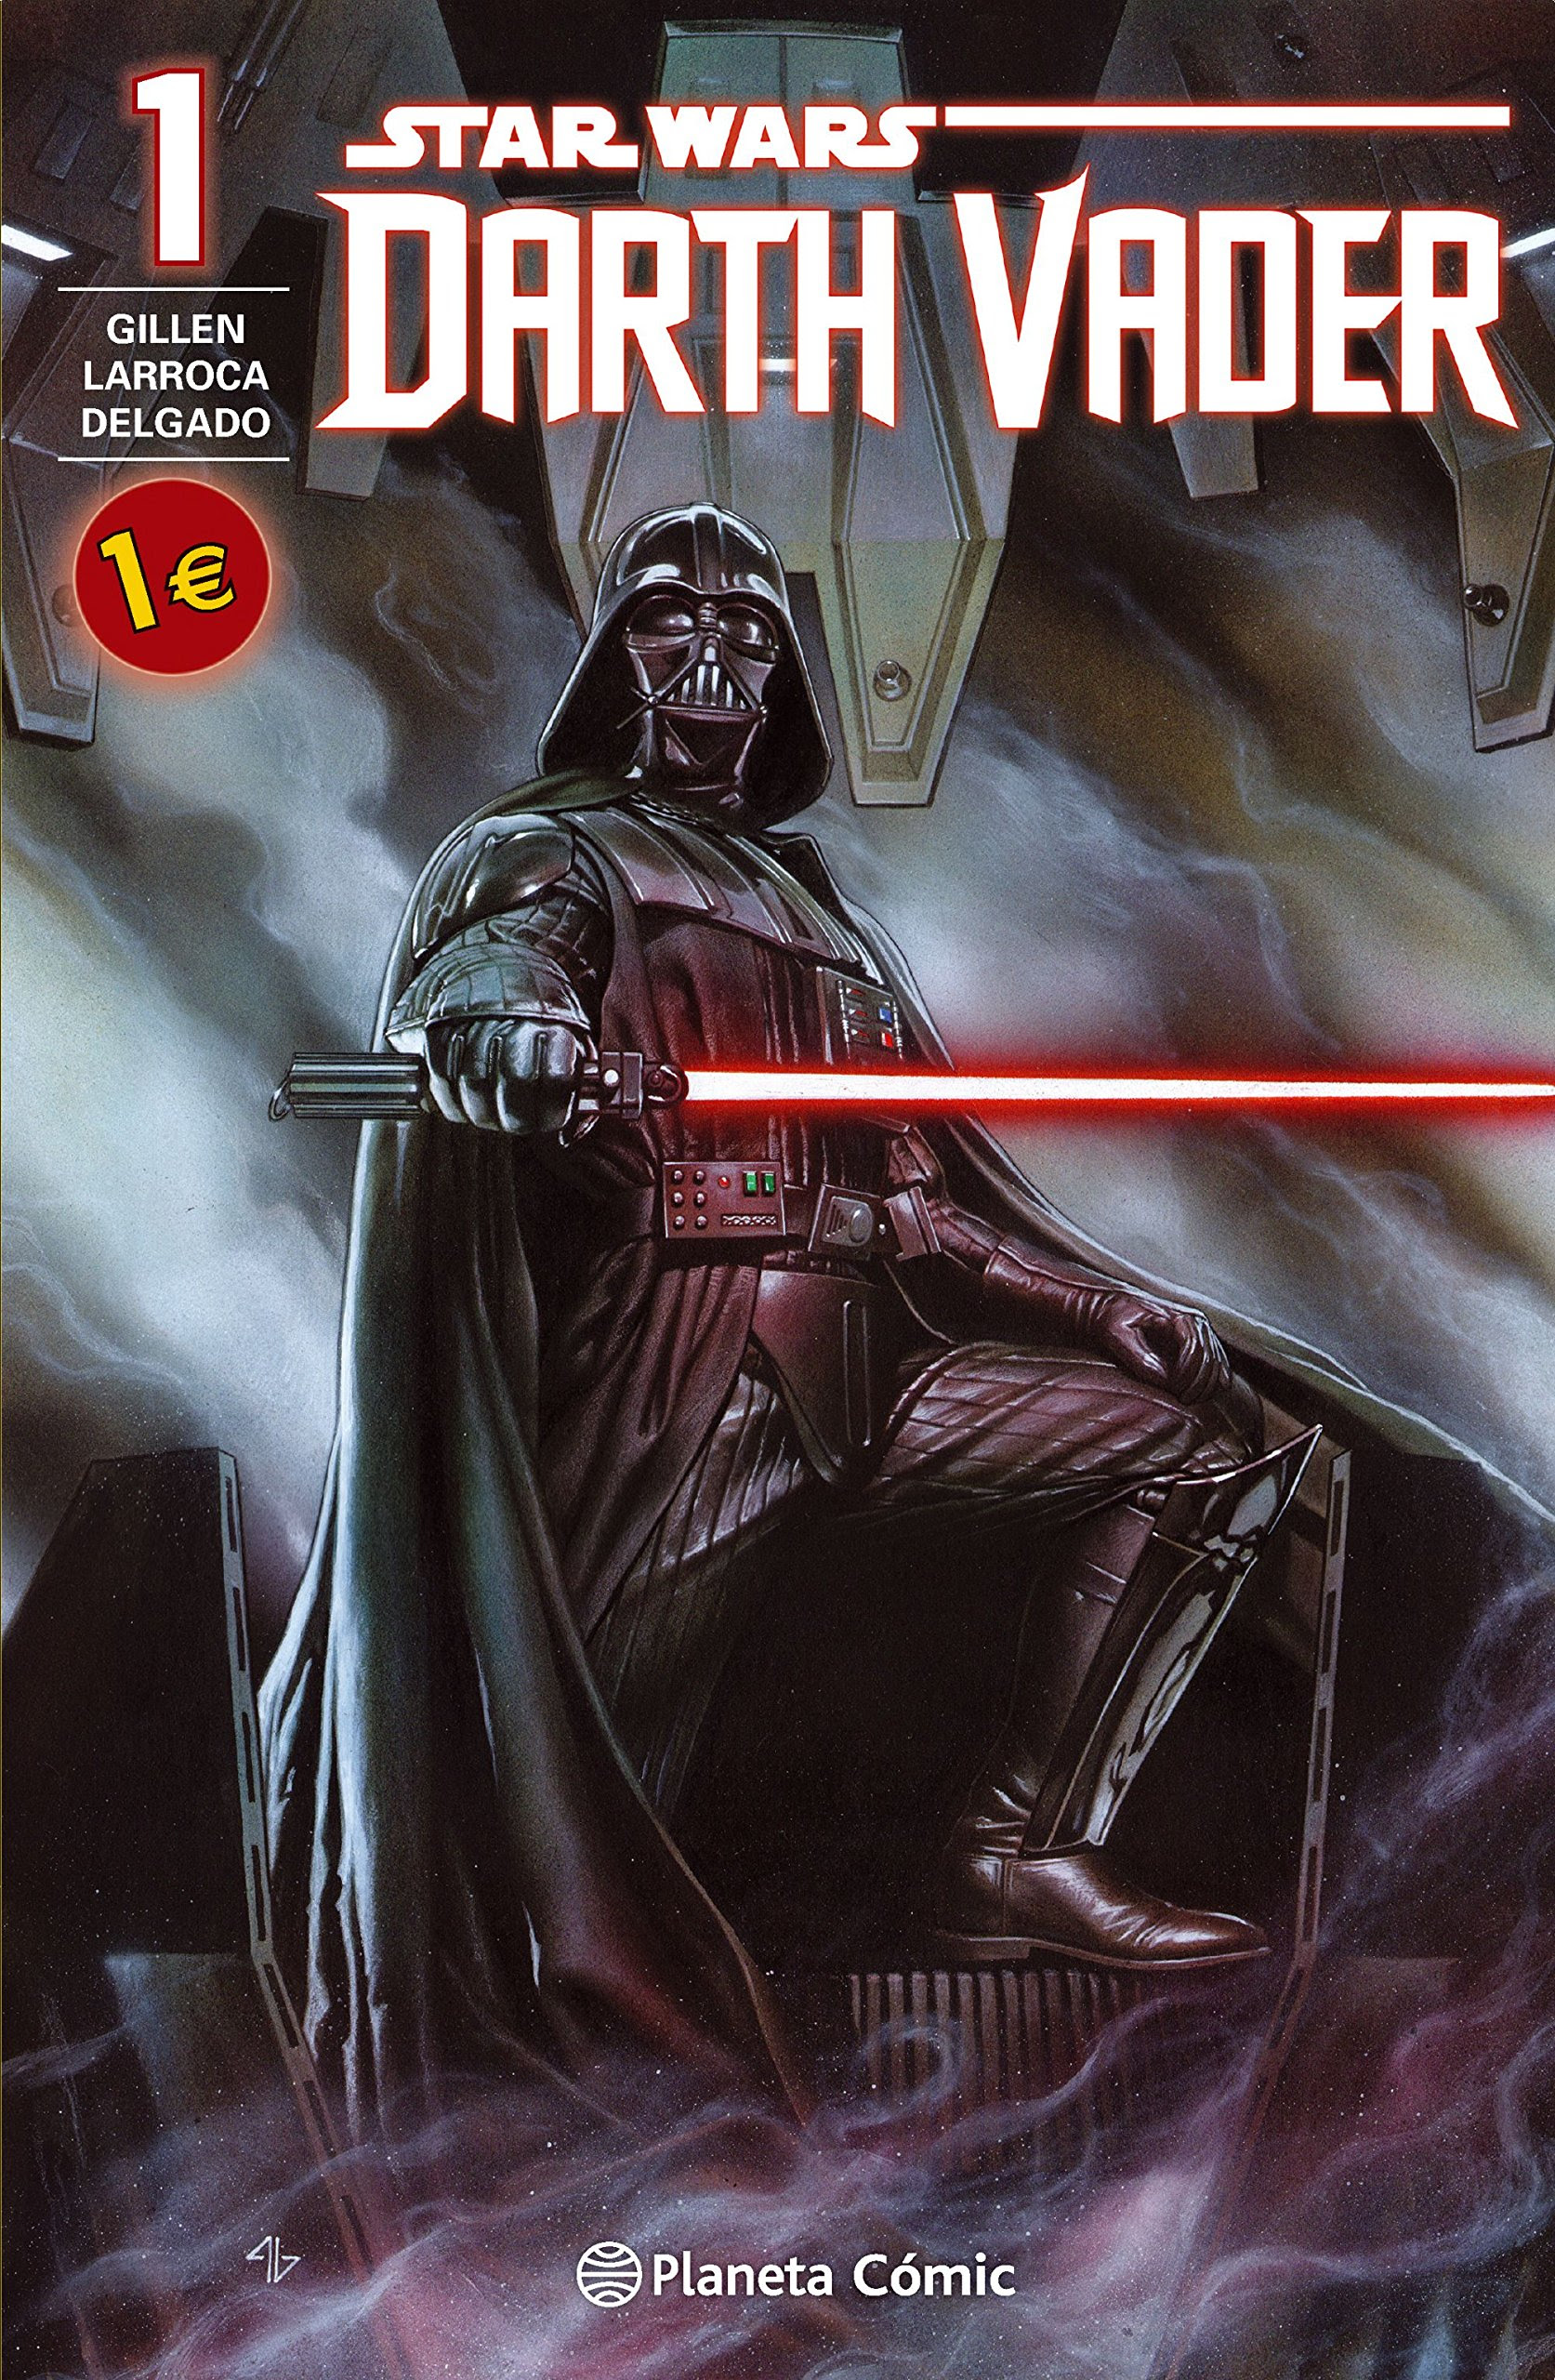 Cómic Star Wars Darth Vader I